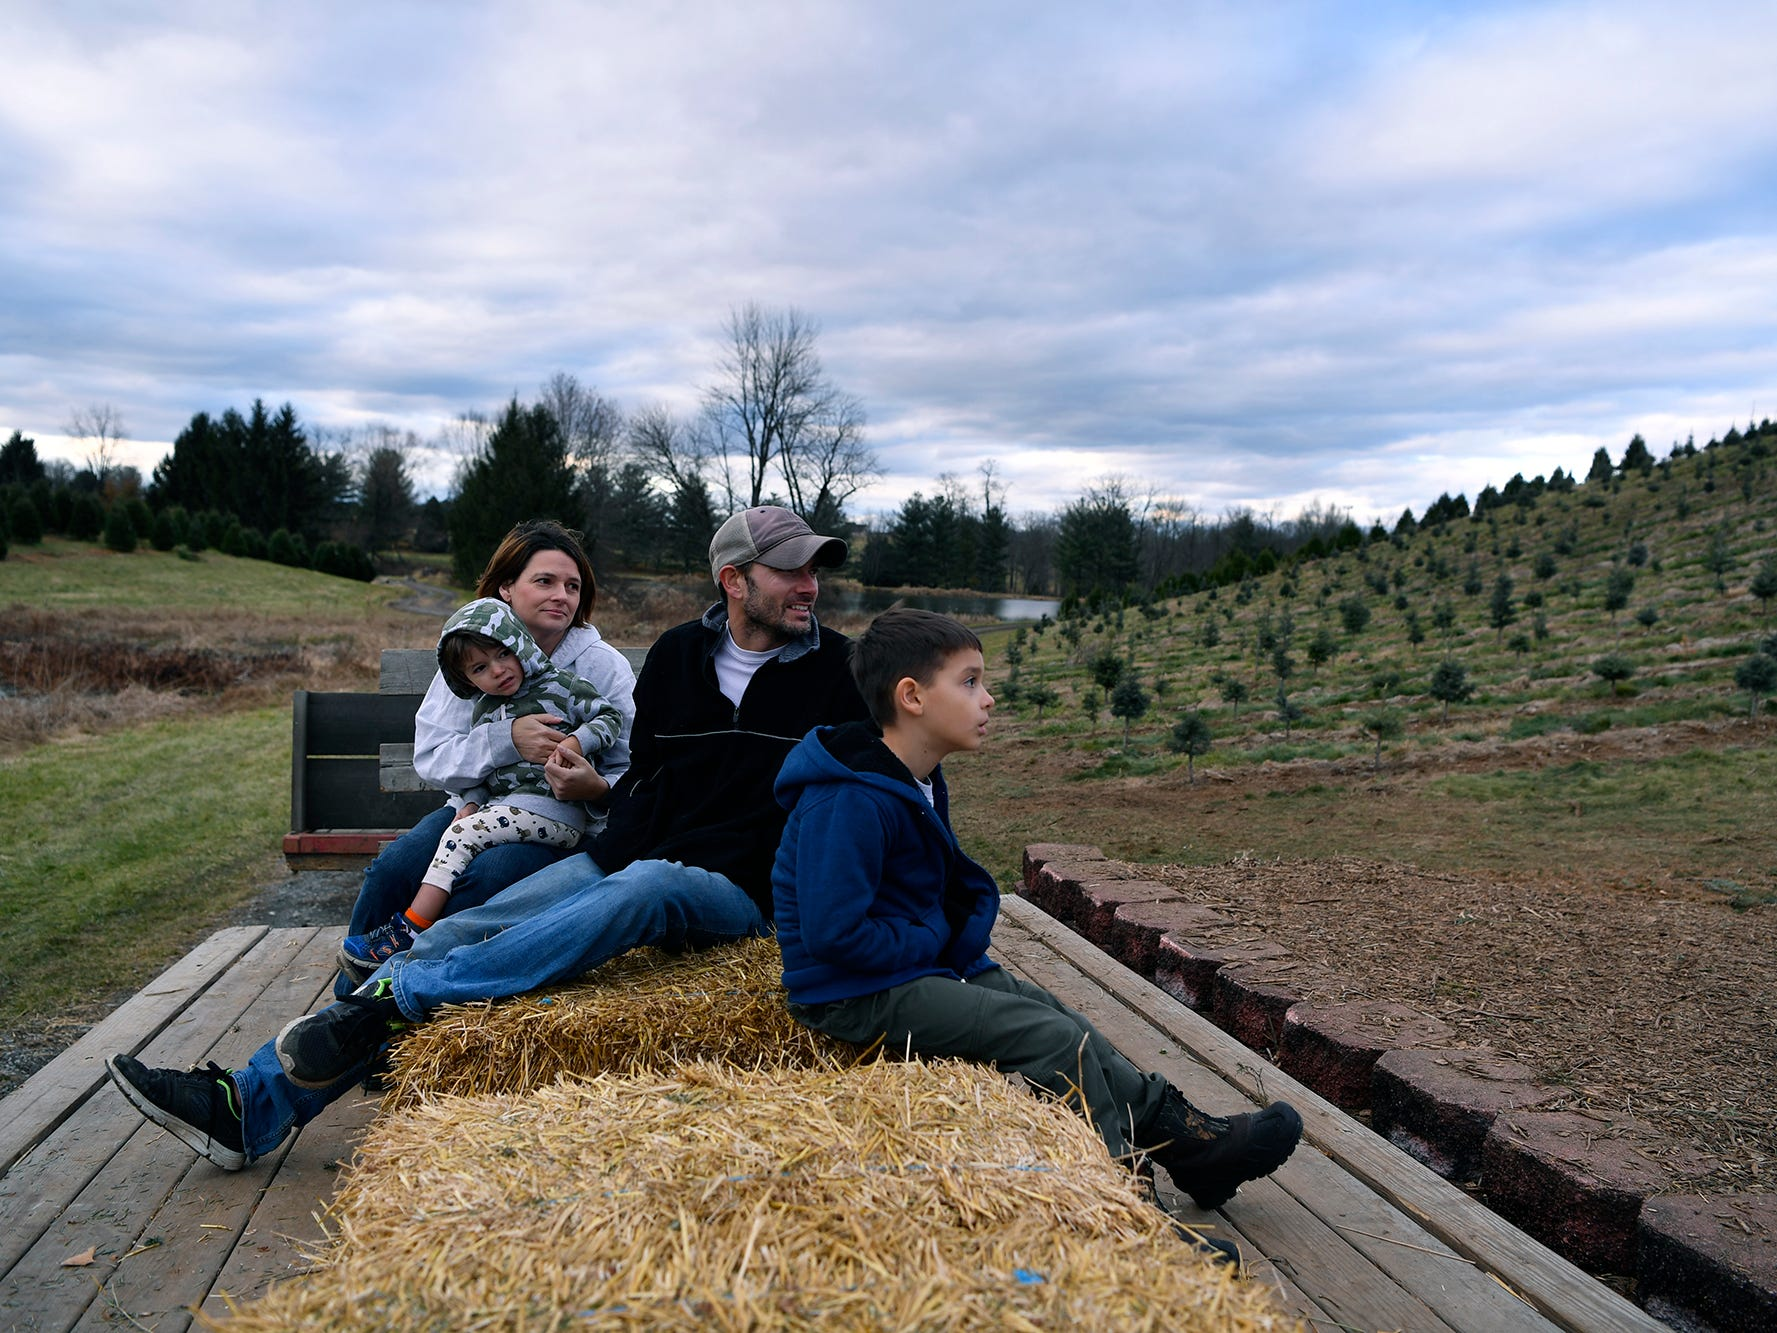 Kerri and Brandon Kuykendall of Mechanicsburg, head out into McCurdy's Tree Farm in Dillsburg with their sons Tristan, 2, and River, 7, to search for the perfect Christmas tree, Monday, December 3, 2018. 